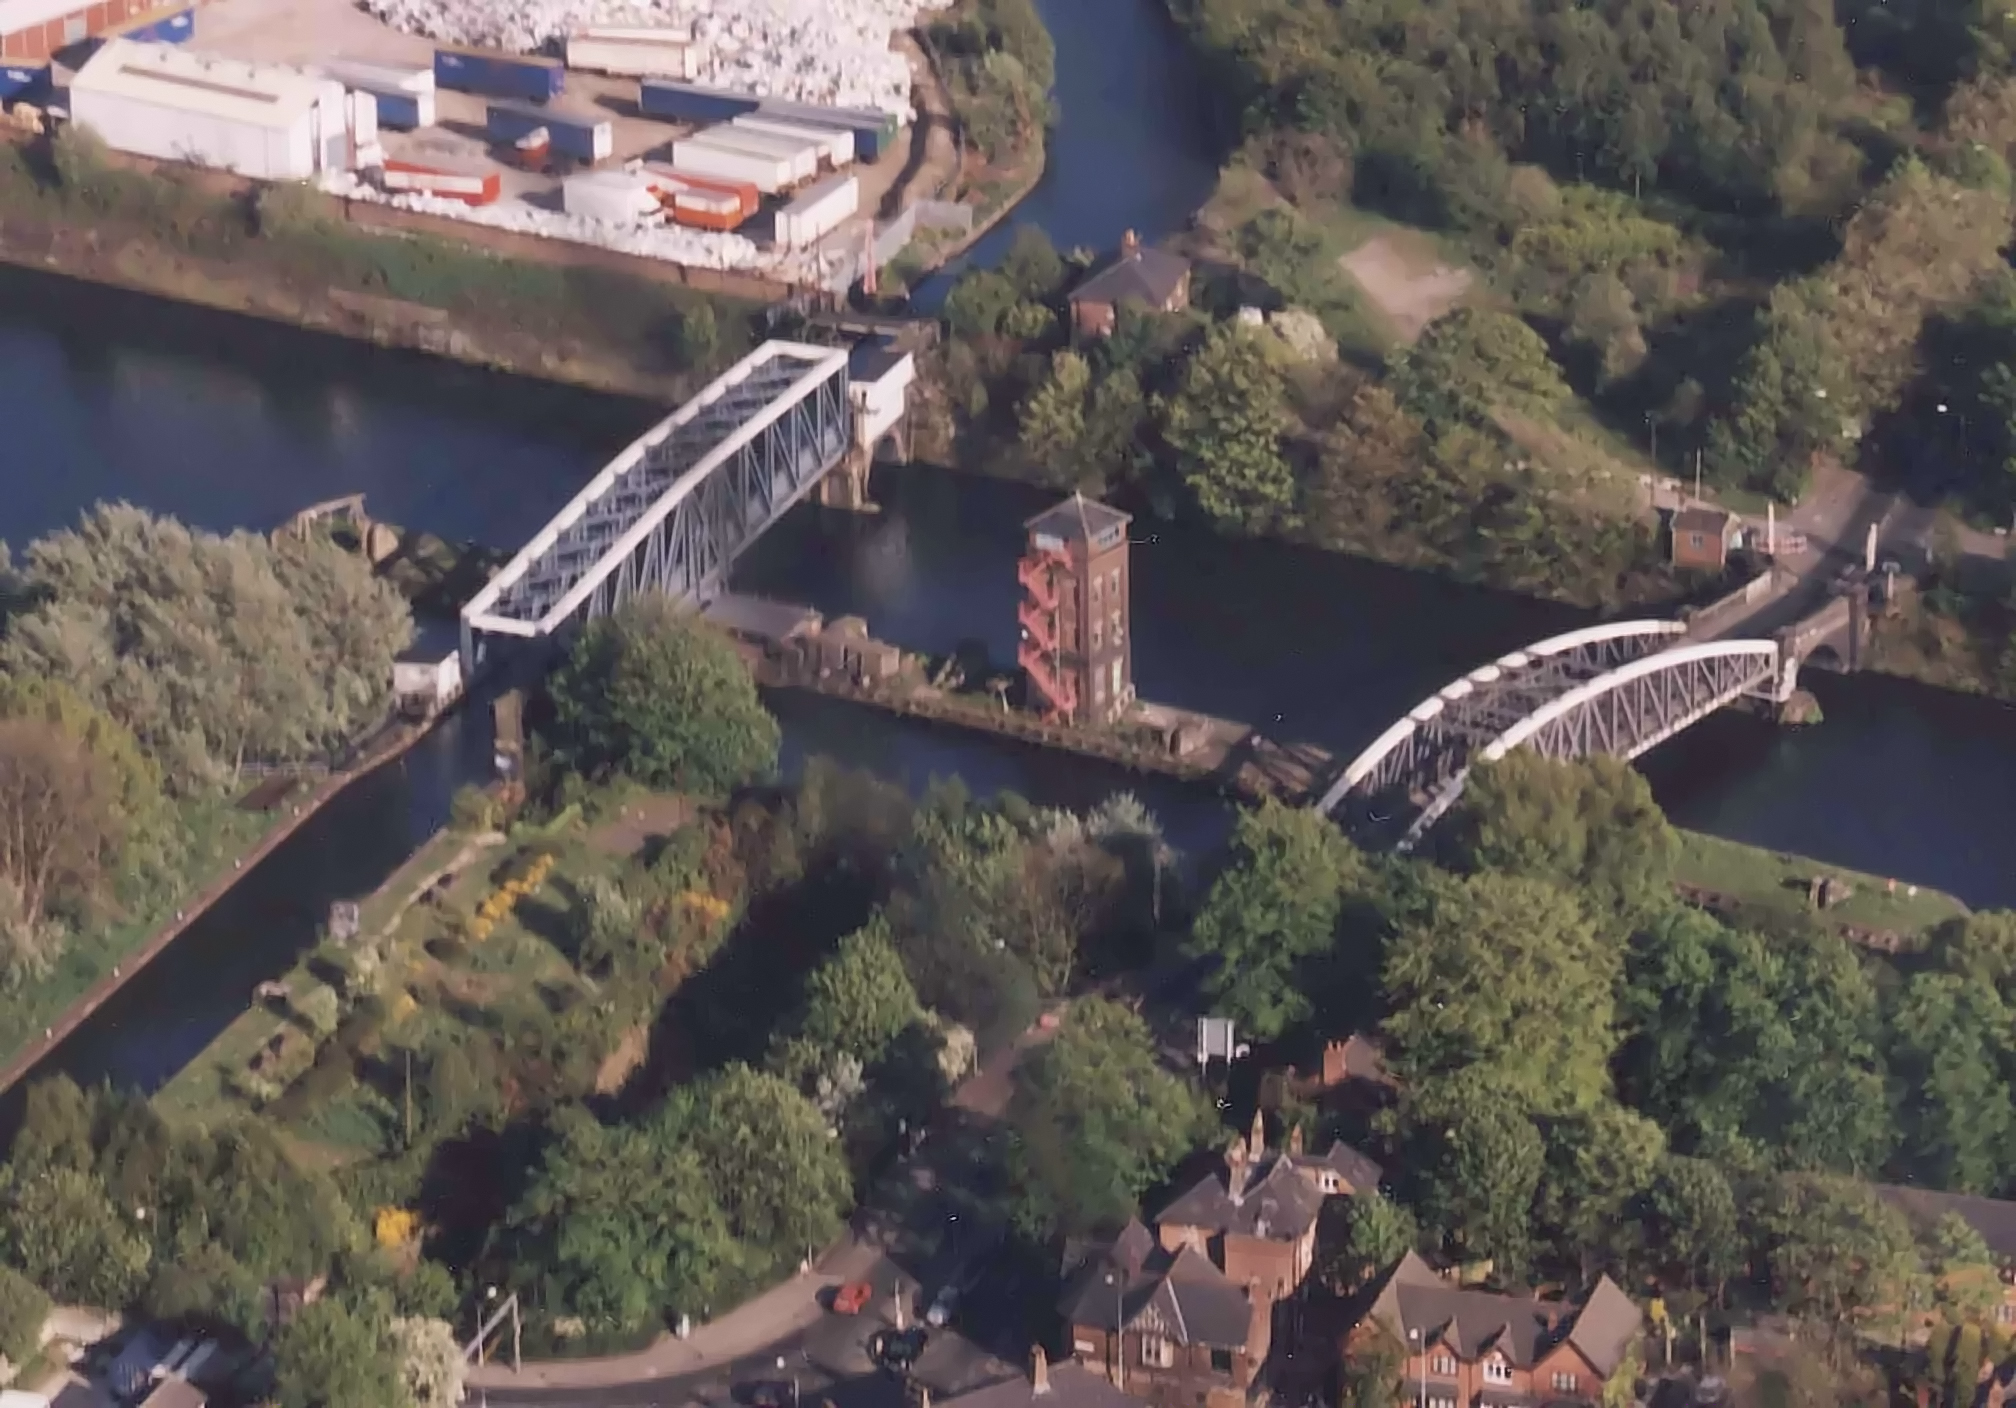 The swing aqueduct in the closed position, showing the Bridgewater Canal crossing over the Ship Canal. The Barton Road Swing Bridge is on the right.